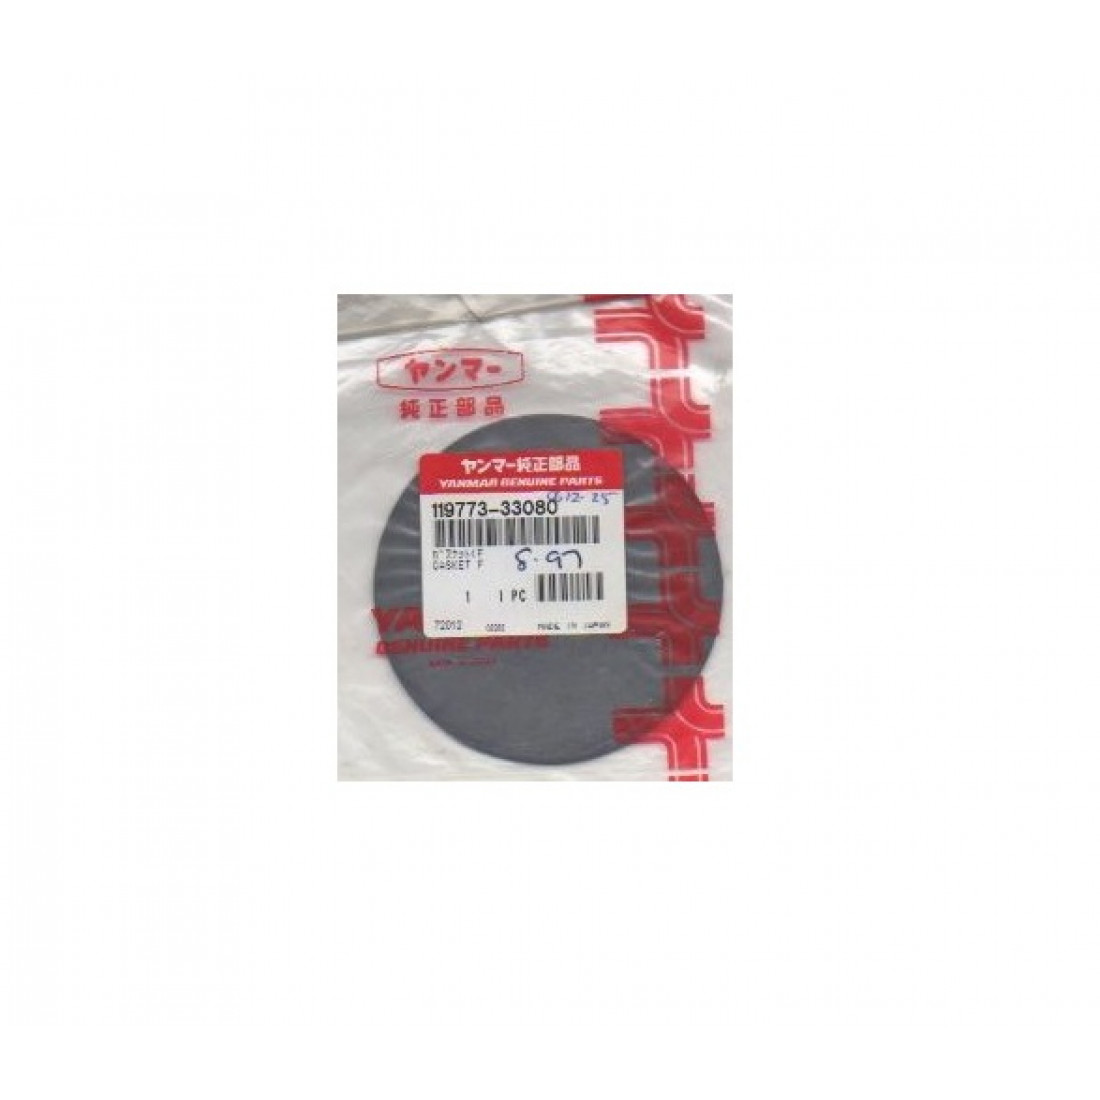 Gasket, Front 119773-33080